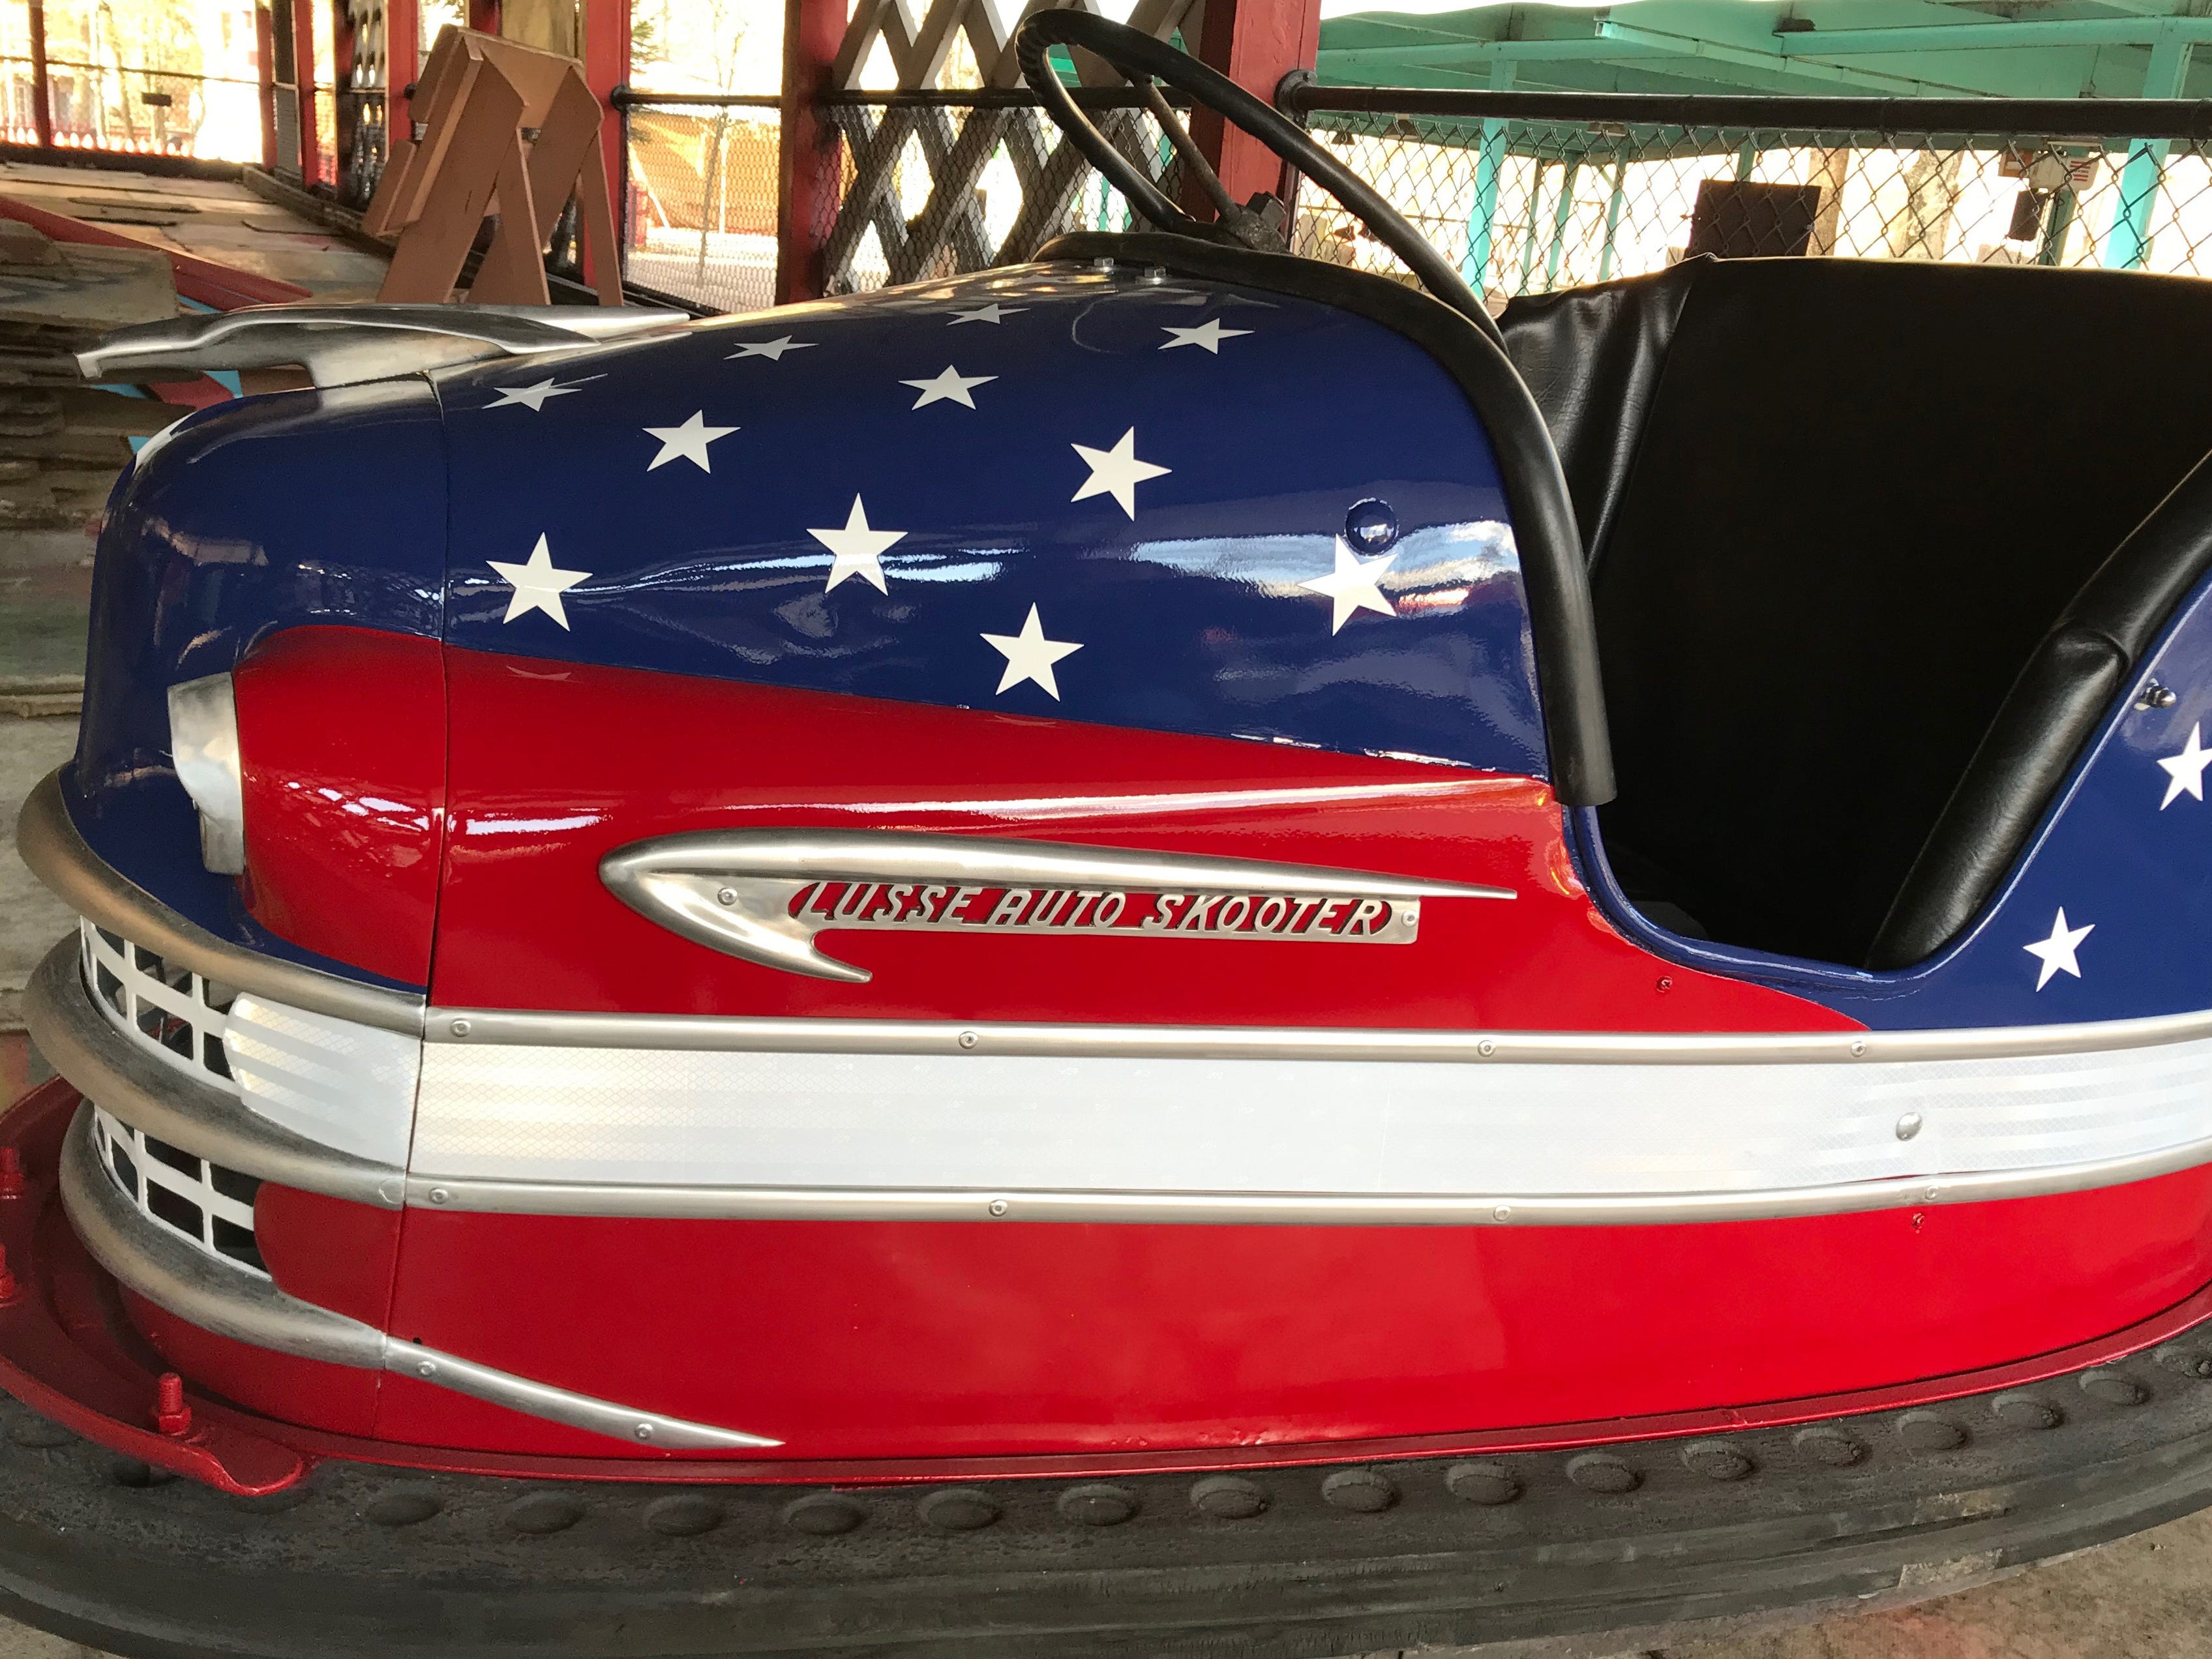 One of the best collections of vintage bumper cars is at Knoebels in Elysburg, Pennsylvania. The park, which dates back to 1926, began offering Dodgem bumper cars in 1947. It switched to Lusse Auto Skooters and has stuck with them ever since.